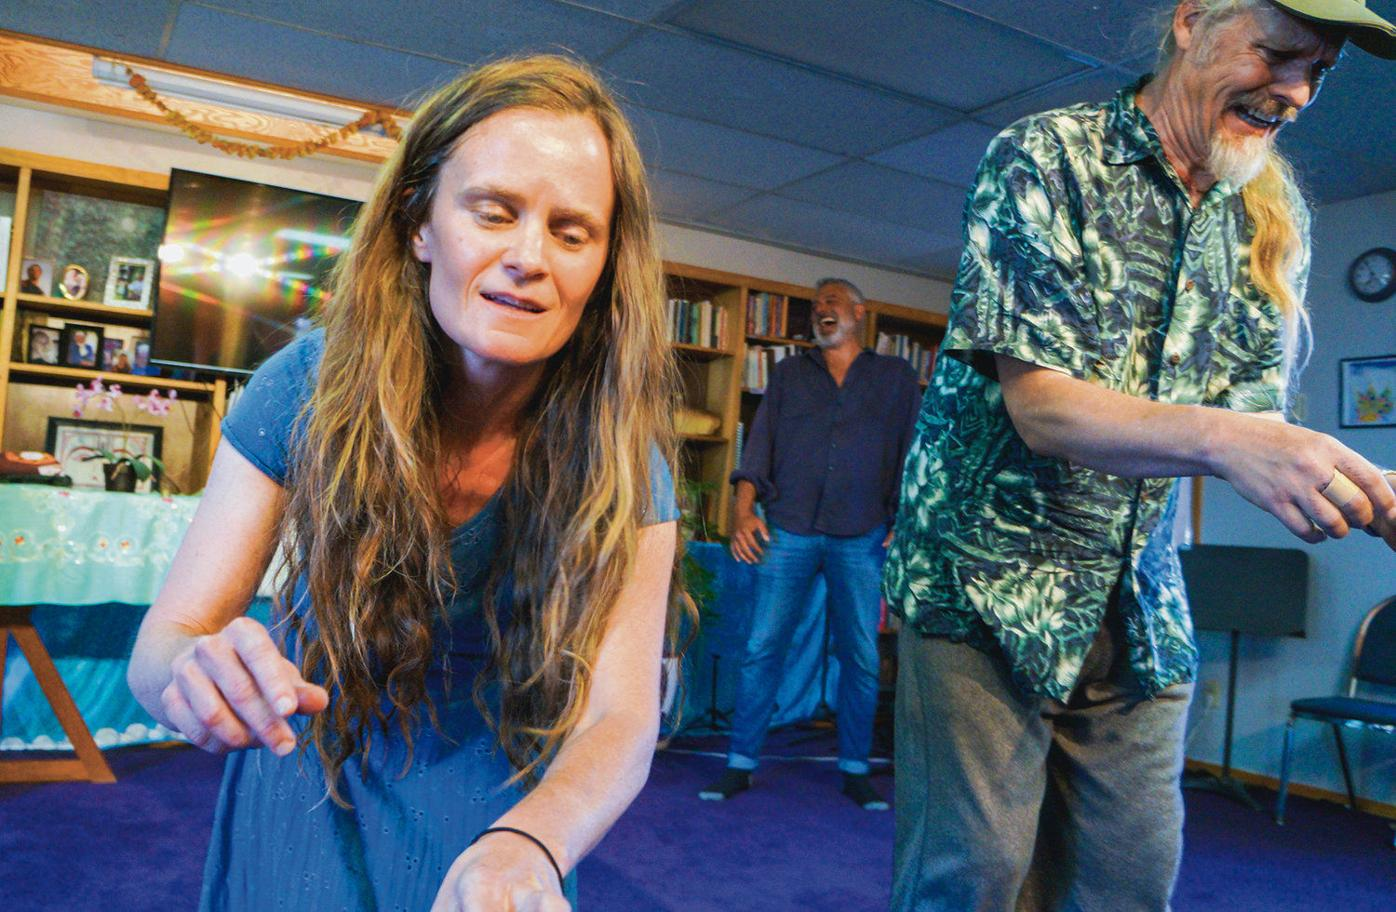 Taos Improv Medicine has the cure for what ails your funny bone